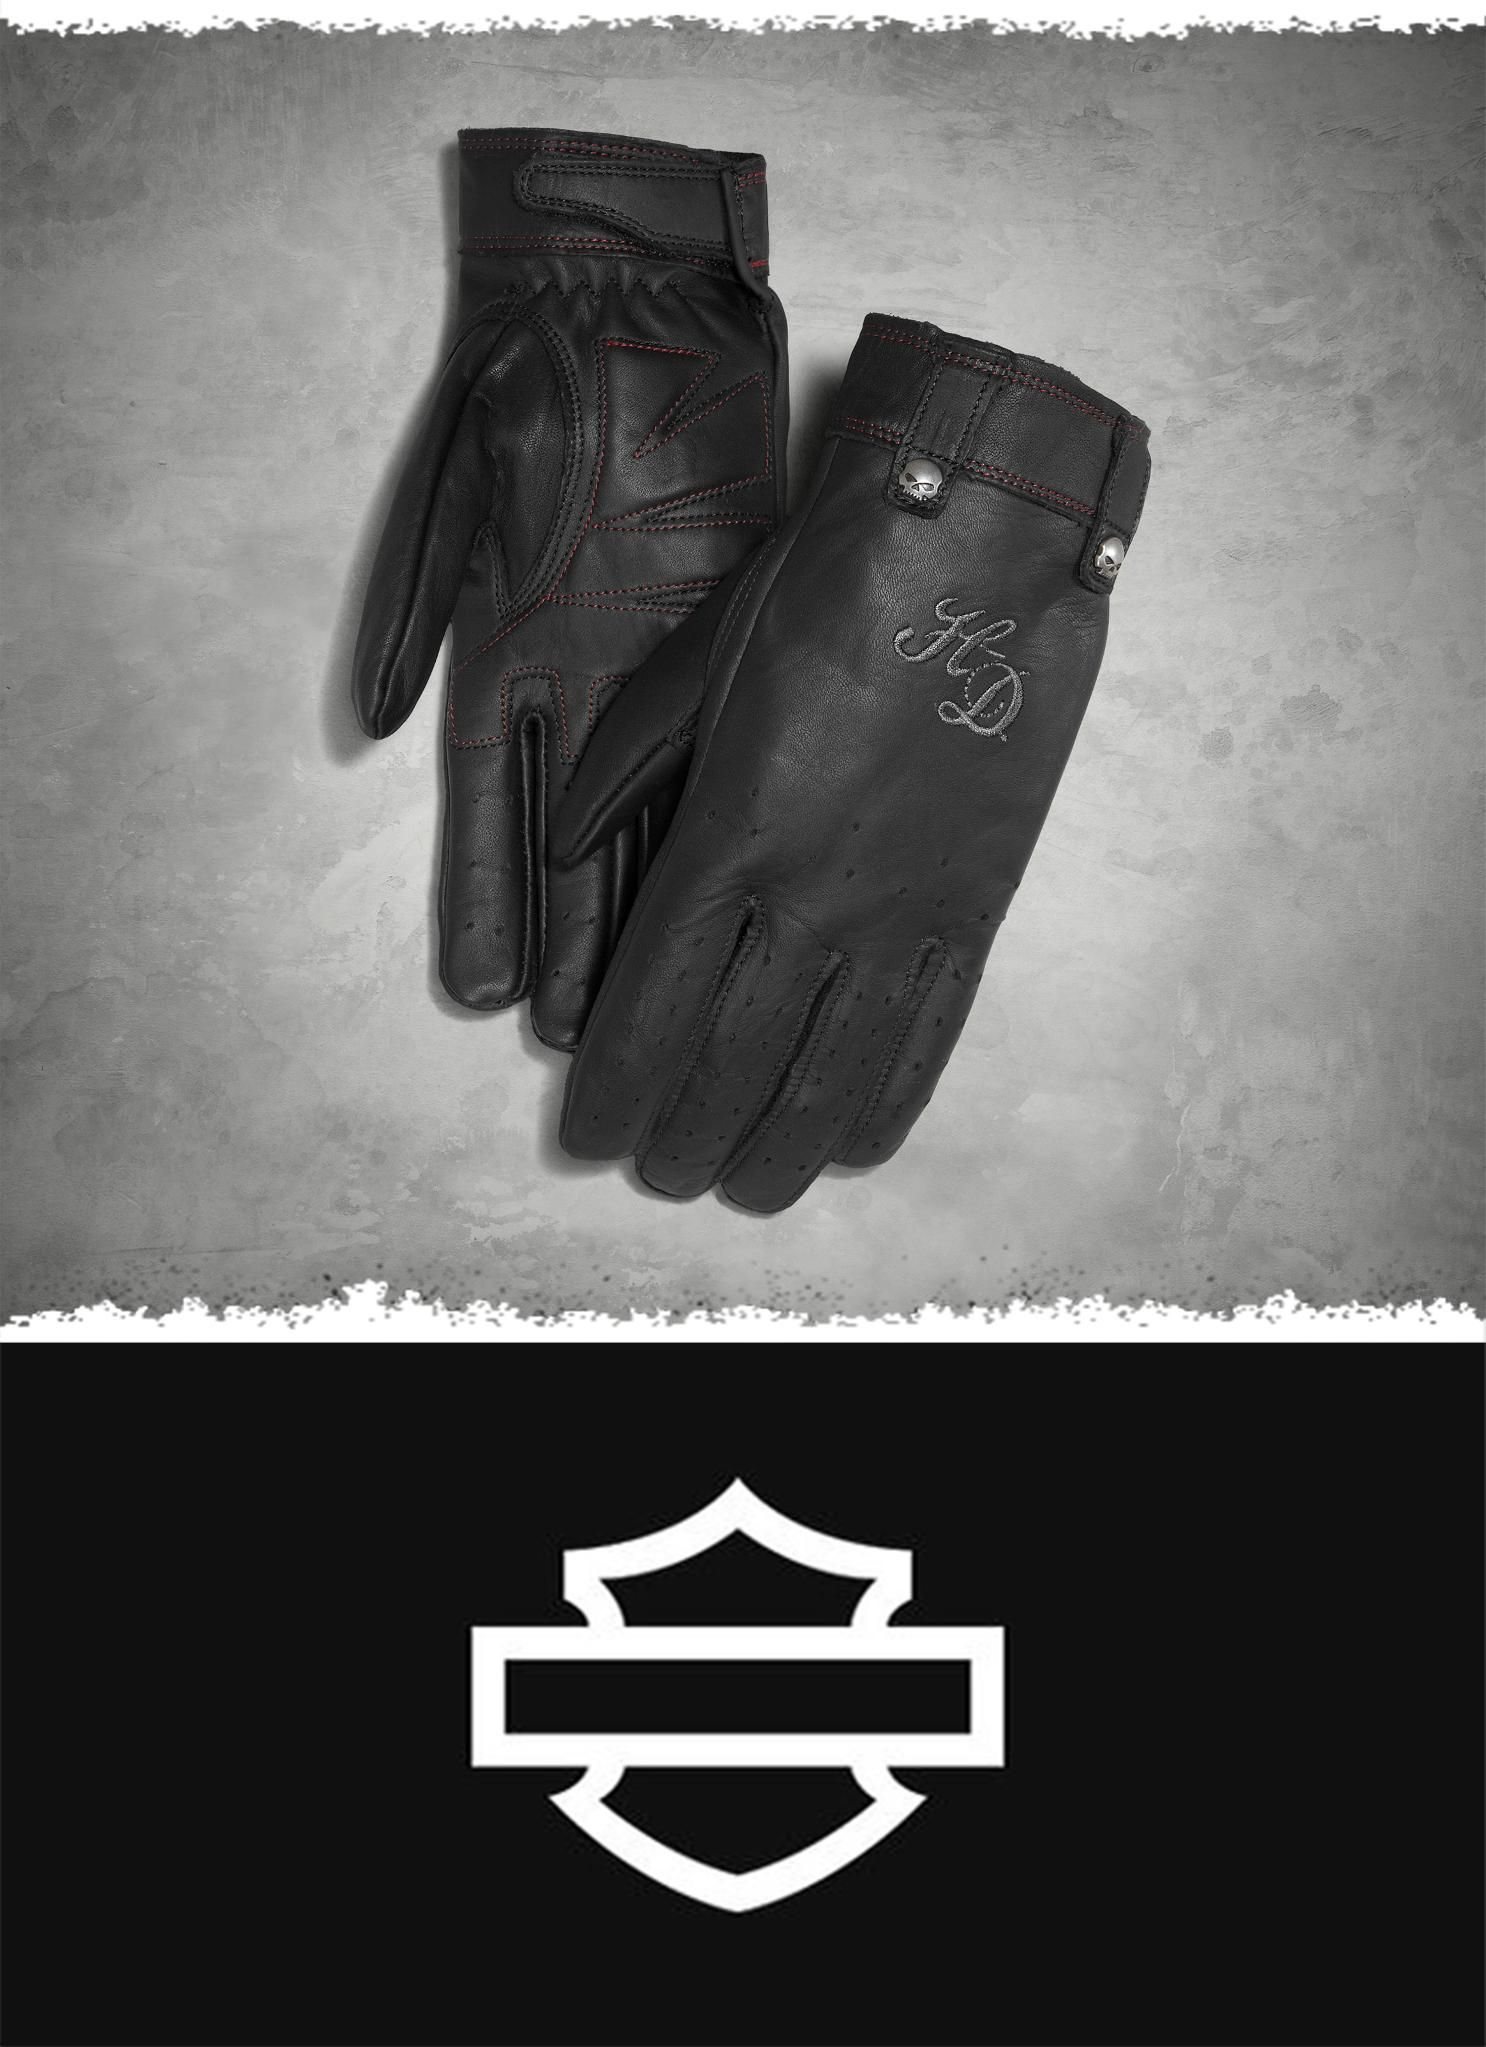 These classic riding gloves are styled from long-lasting cowhide leather. | Harley-Davidson Women's Skull Rivet Leather Gloves #MothersDay